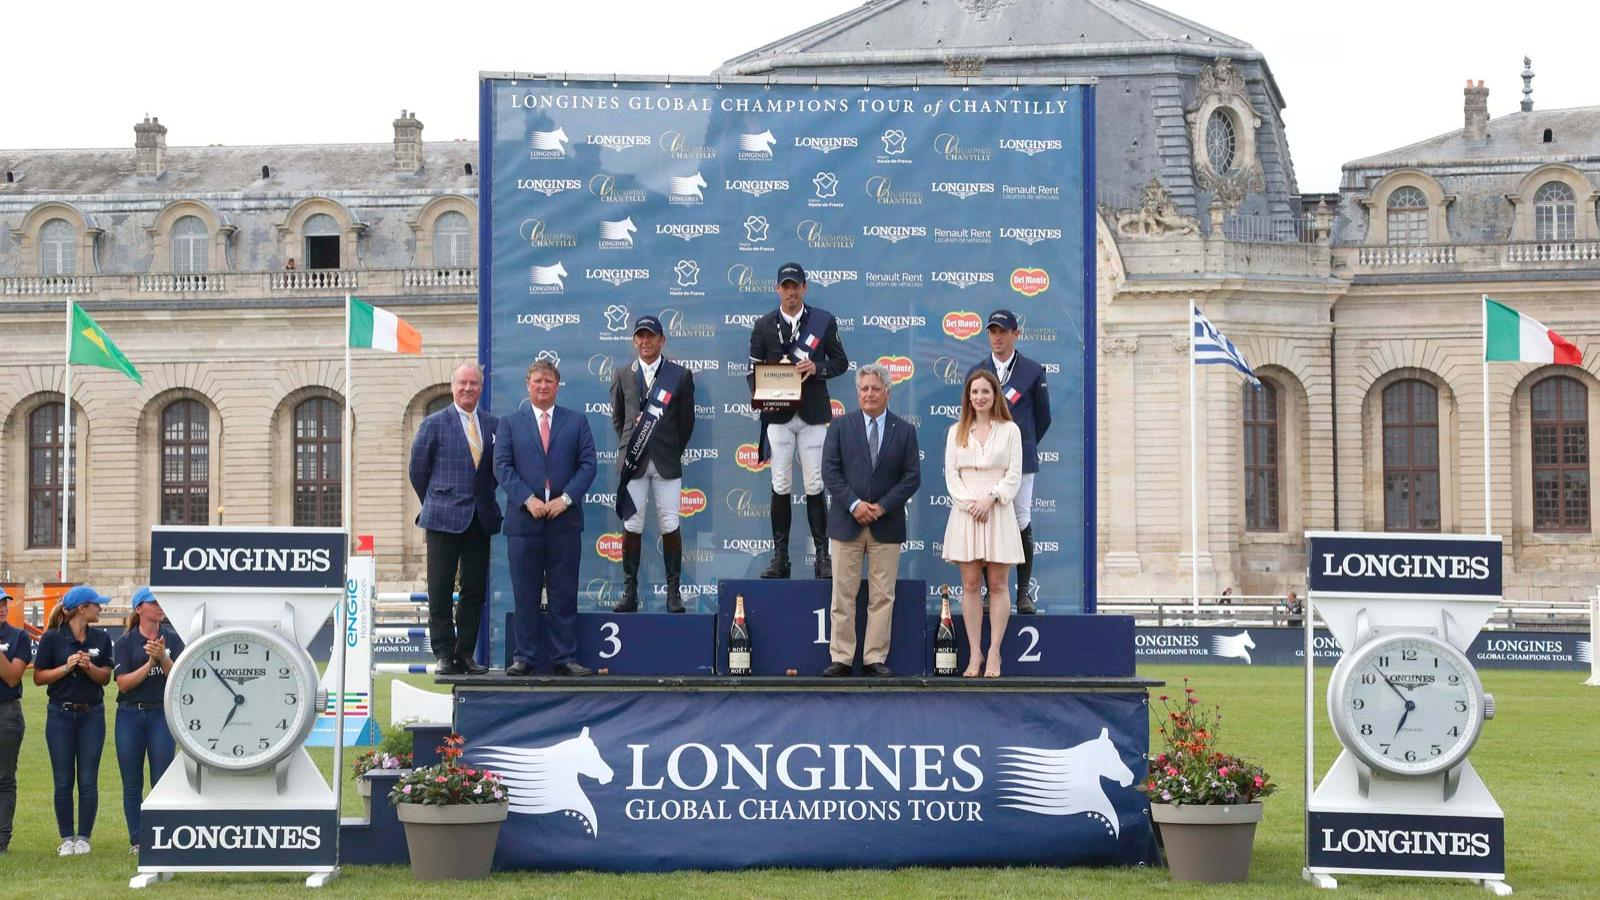 Longines Global Champions Tour of Chantilly; Jumping; 2017,pic2